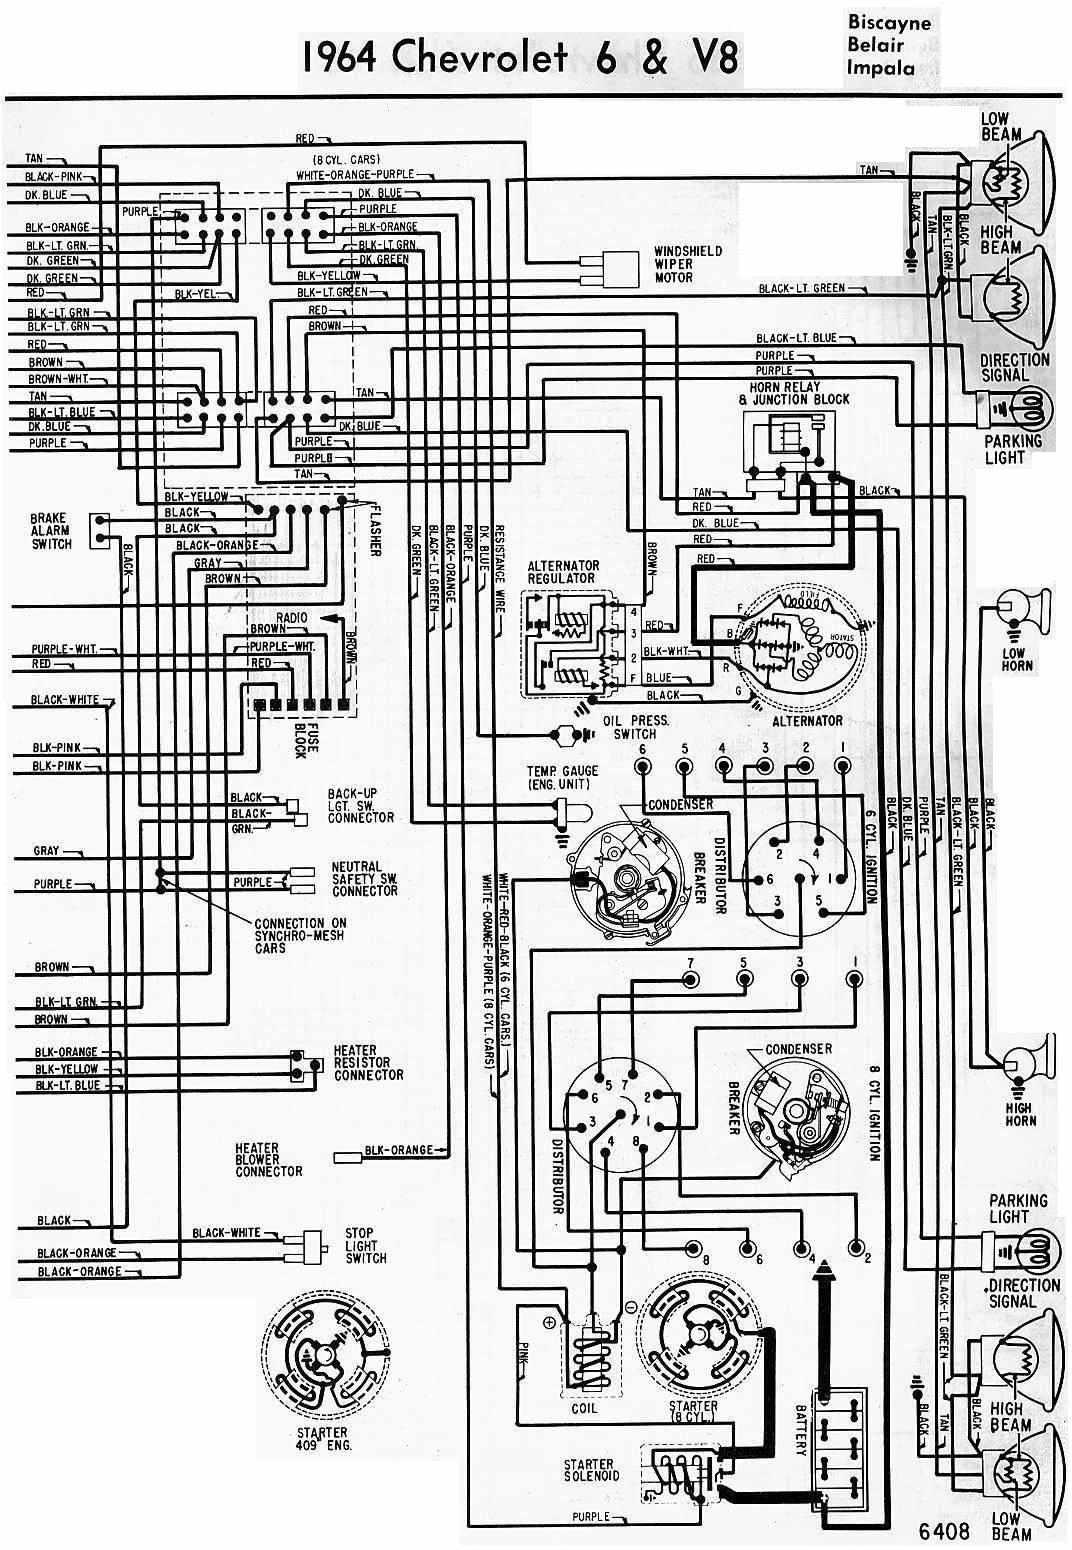 Electrical+Wiring+Diagram+Of+1964+Chevrolet+6+And+V8 1964 chevy impala wiring diagram 1964 chevy impala red \u2022 wiring 1964 impala wiring diagram for ignition at webbmarketing.co